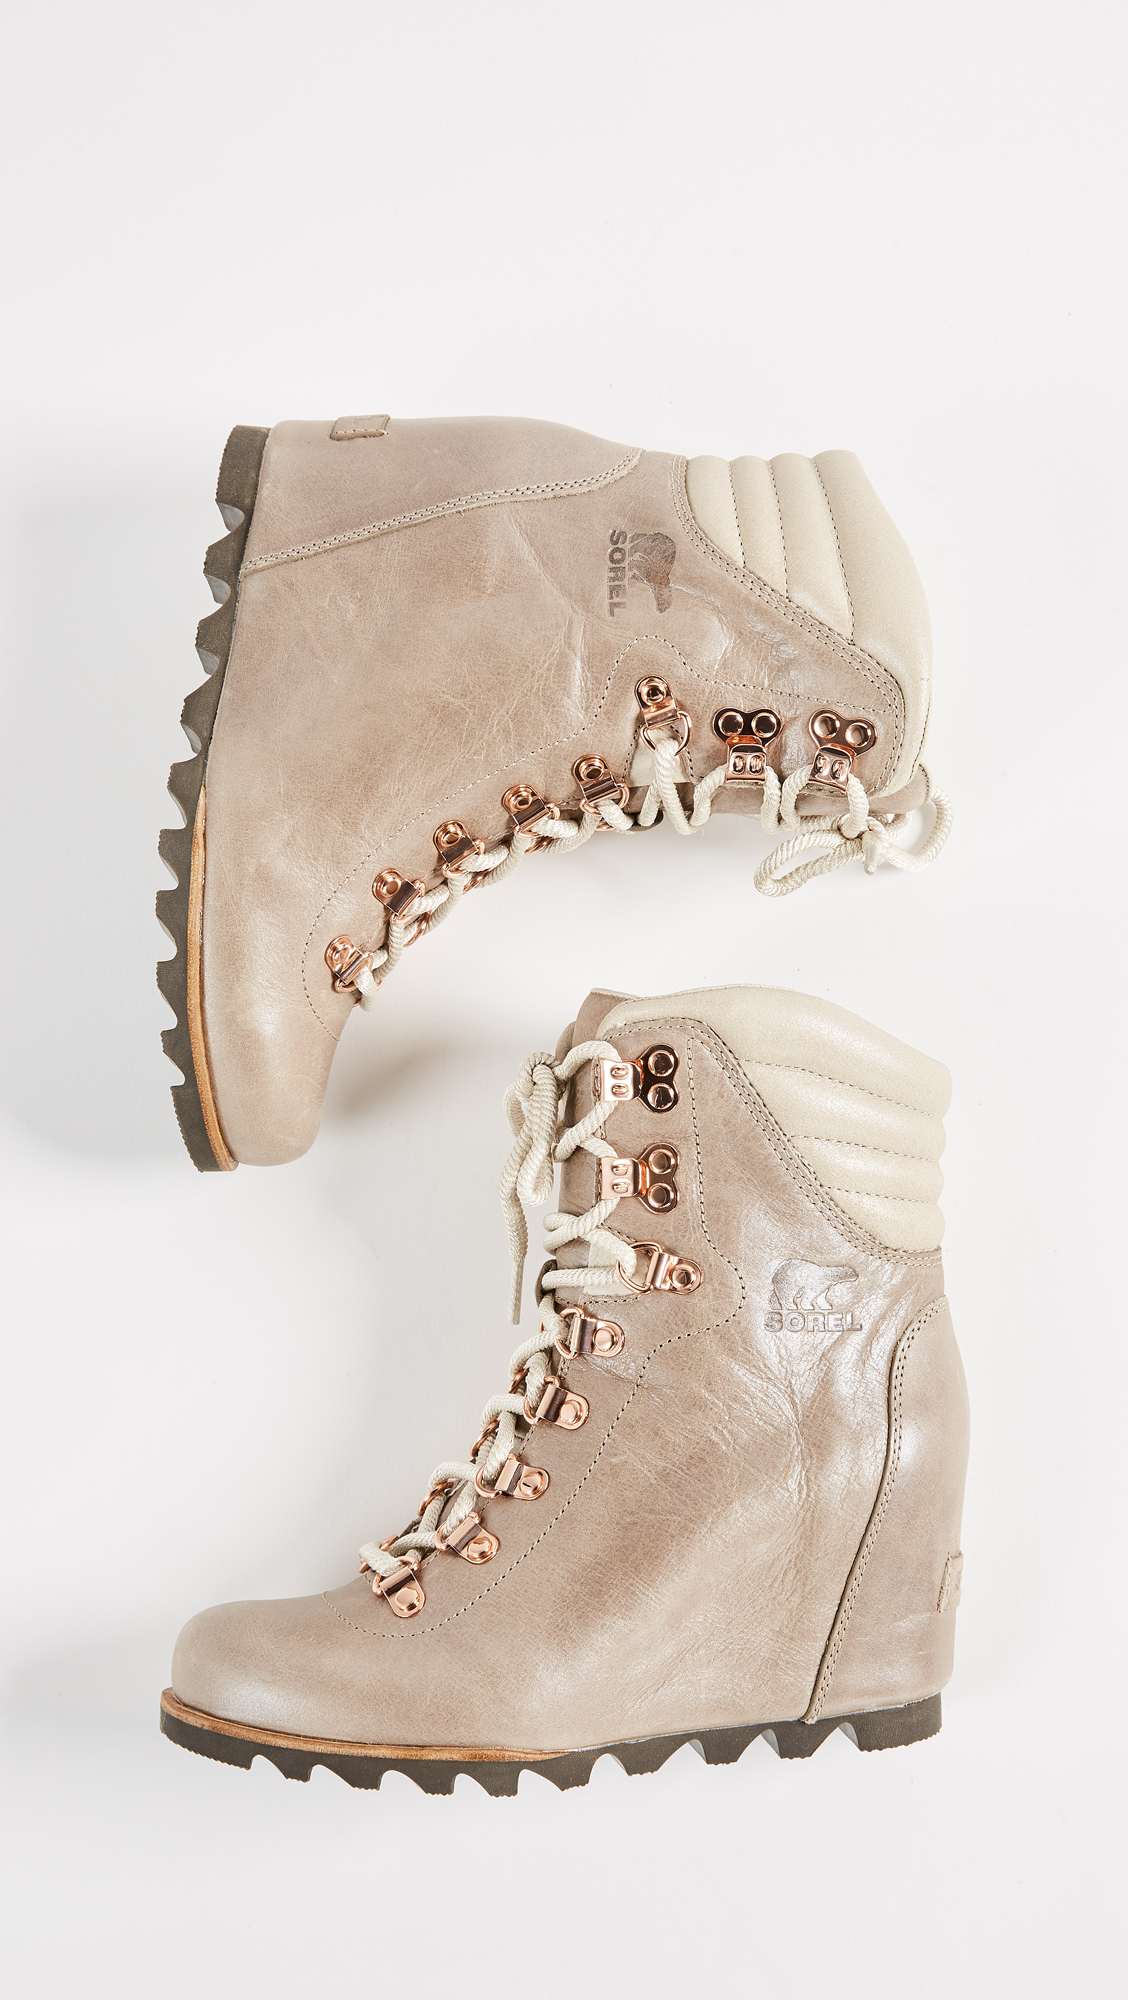 e3b335ddc2ad Sorel Conquest Wedge Holiday Booties